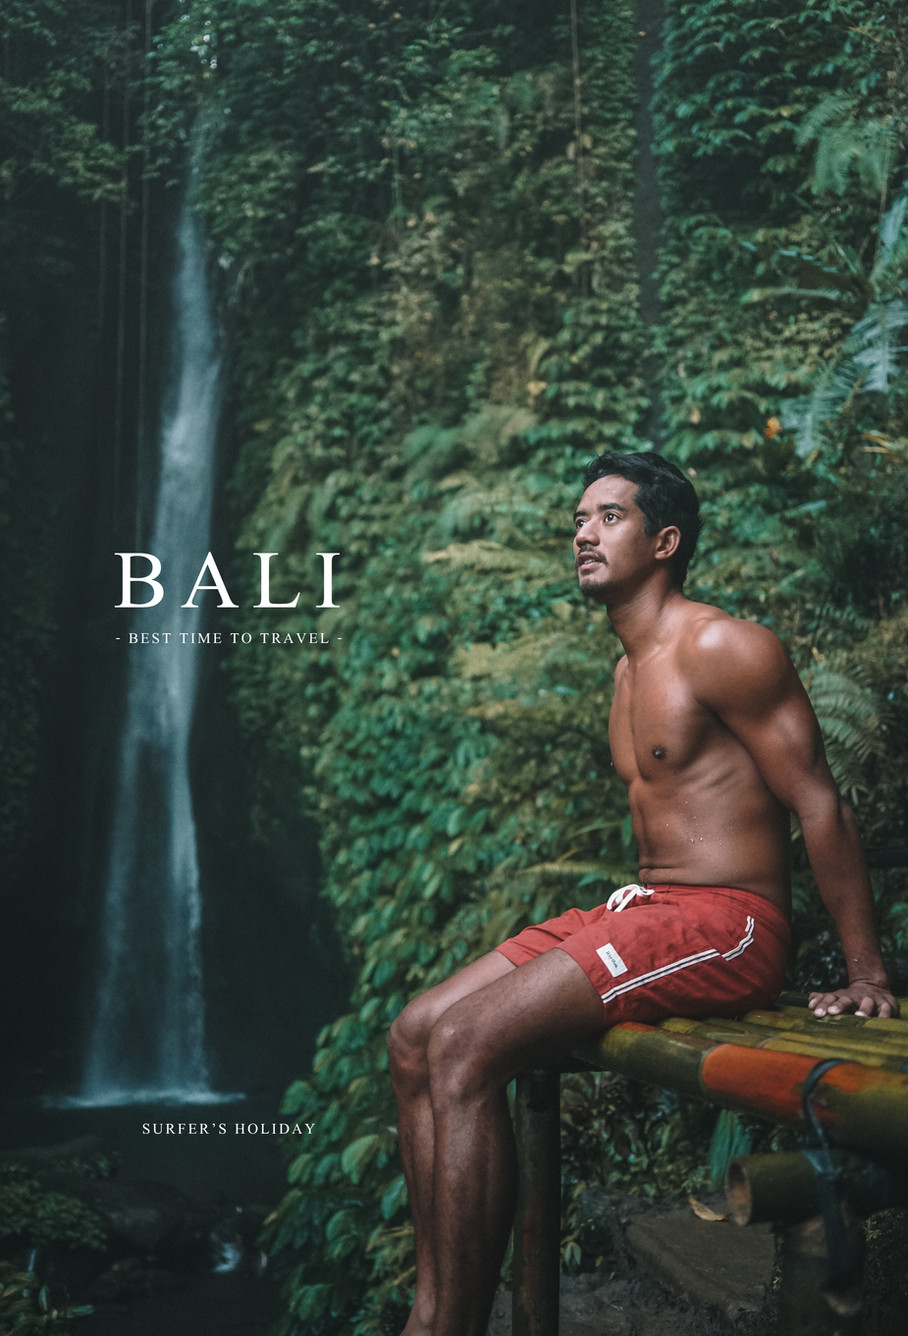 BALI BEST TIME TO TRAVEL